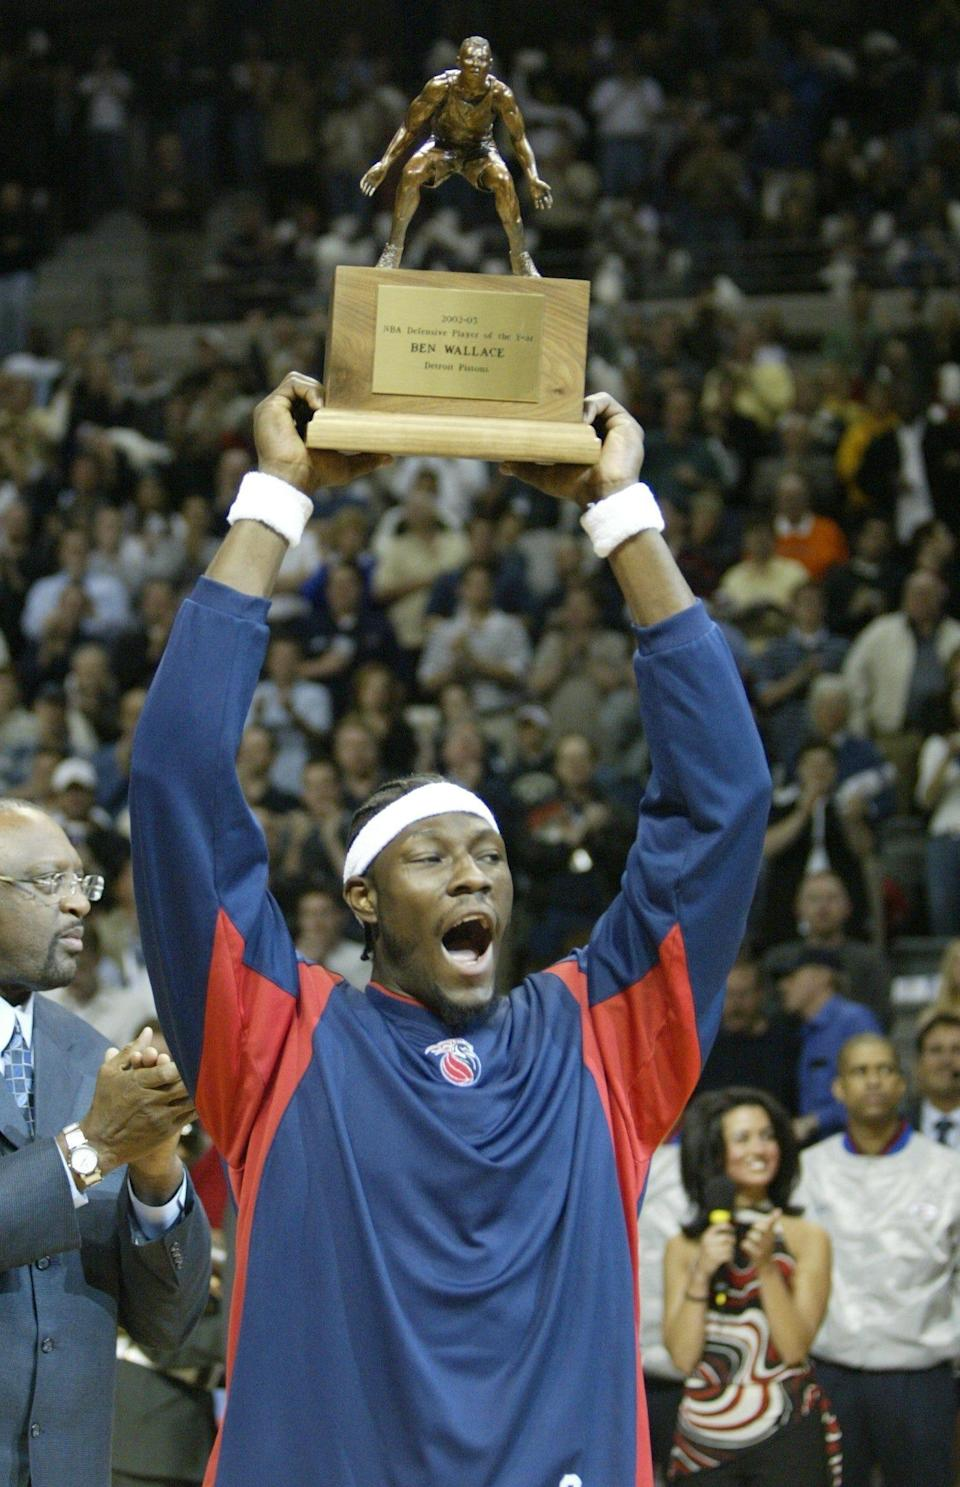 Ben Wallace holds his 2003 NBA Defensive Player of the Year trophy prior to a playoff game at the Palace.